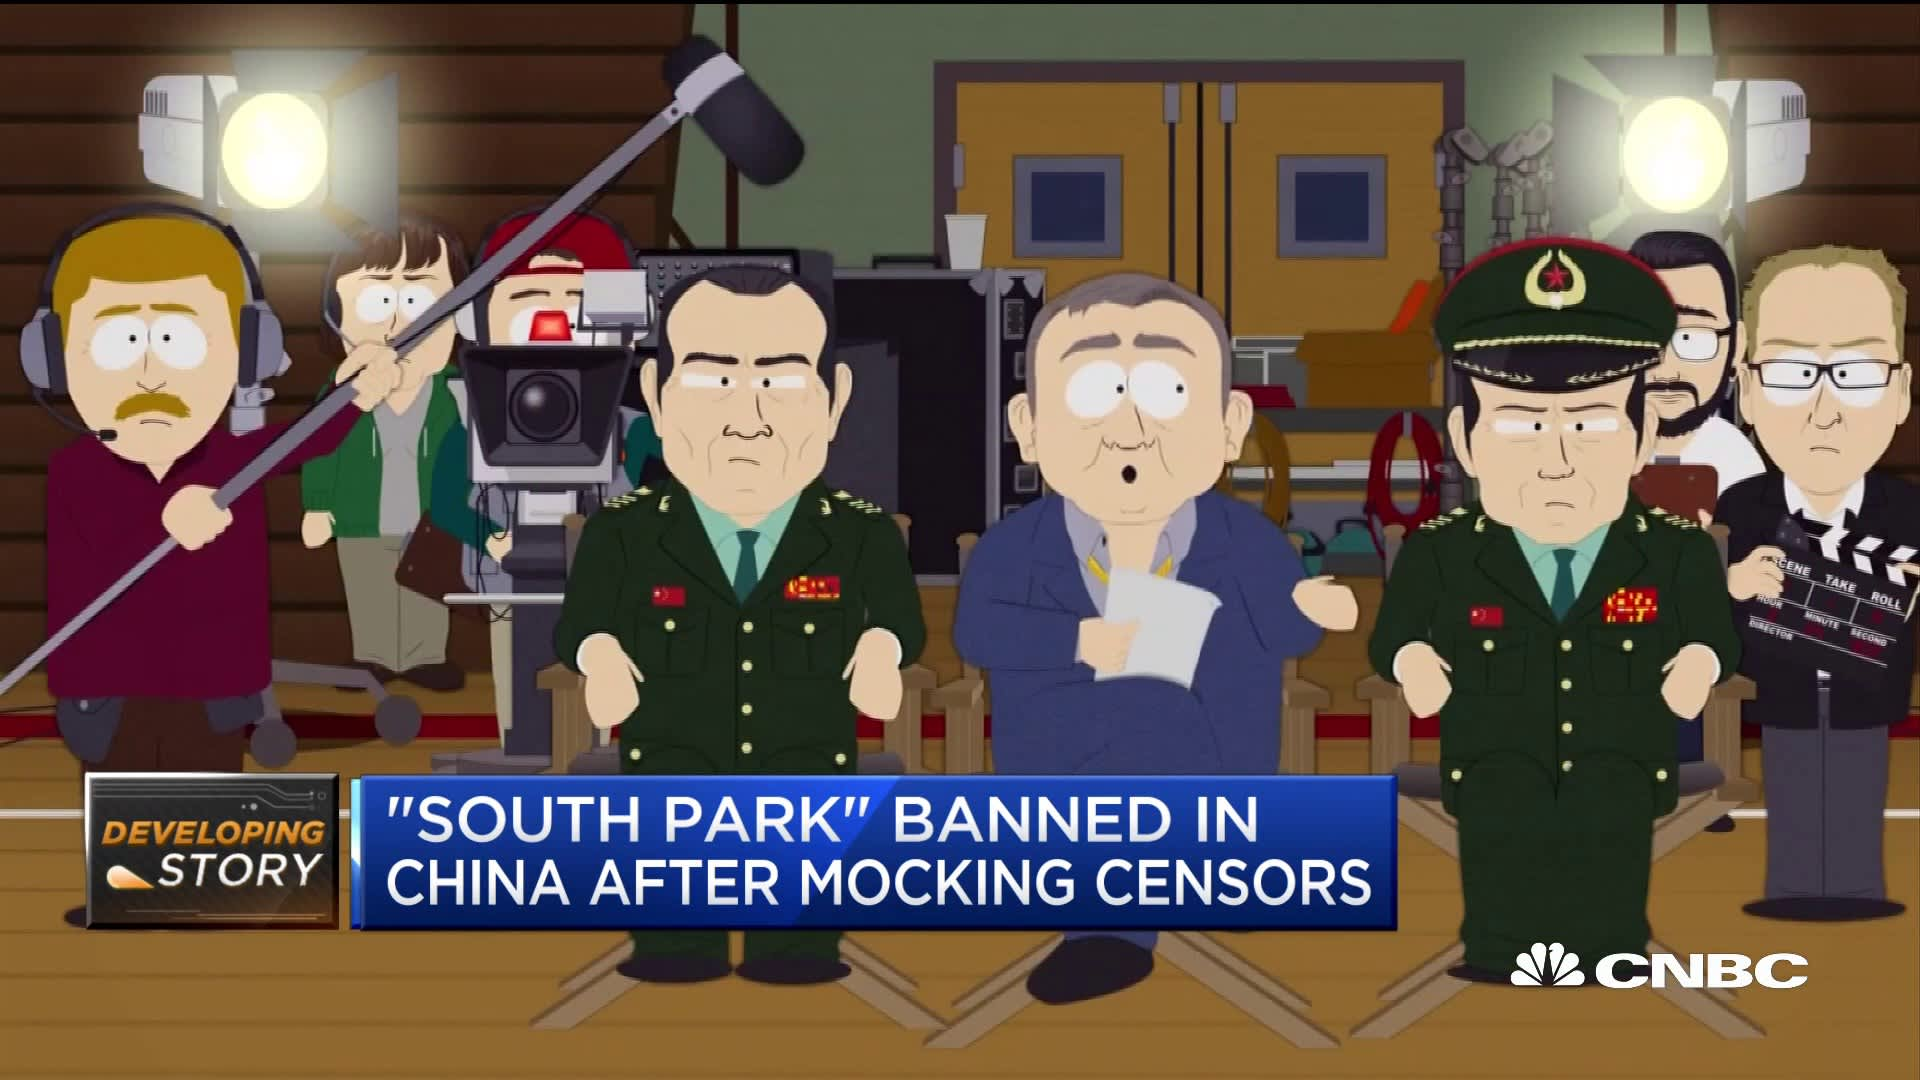 South Park' banned in China after mocking censorship